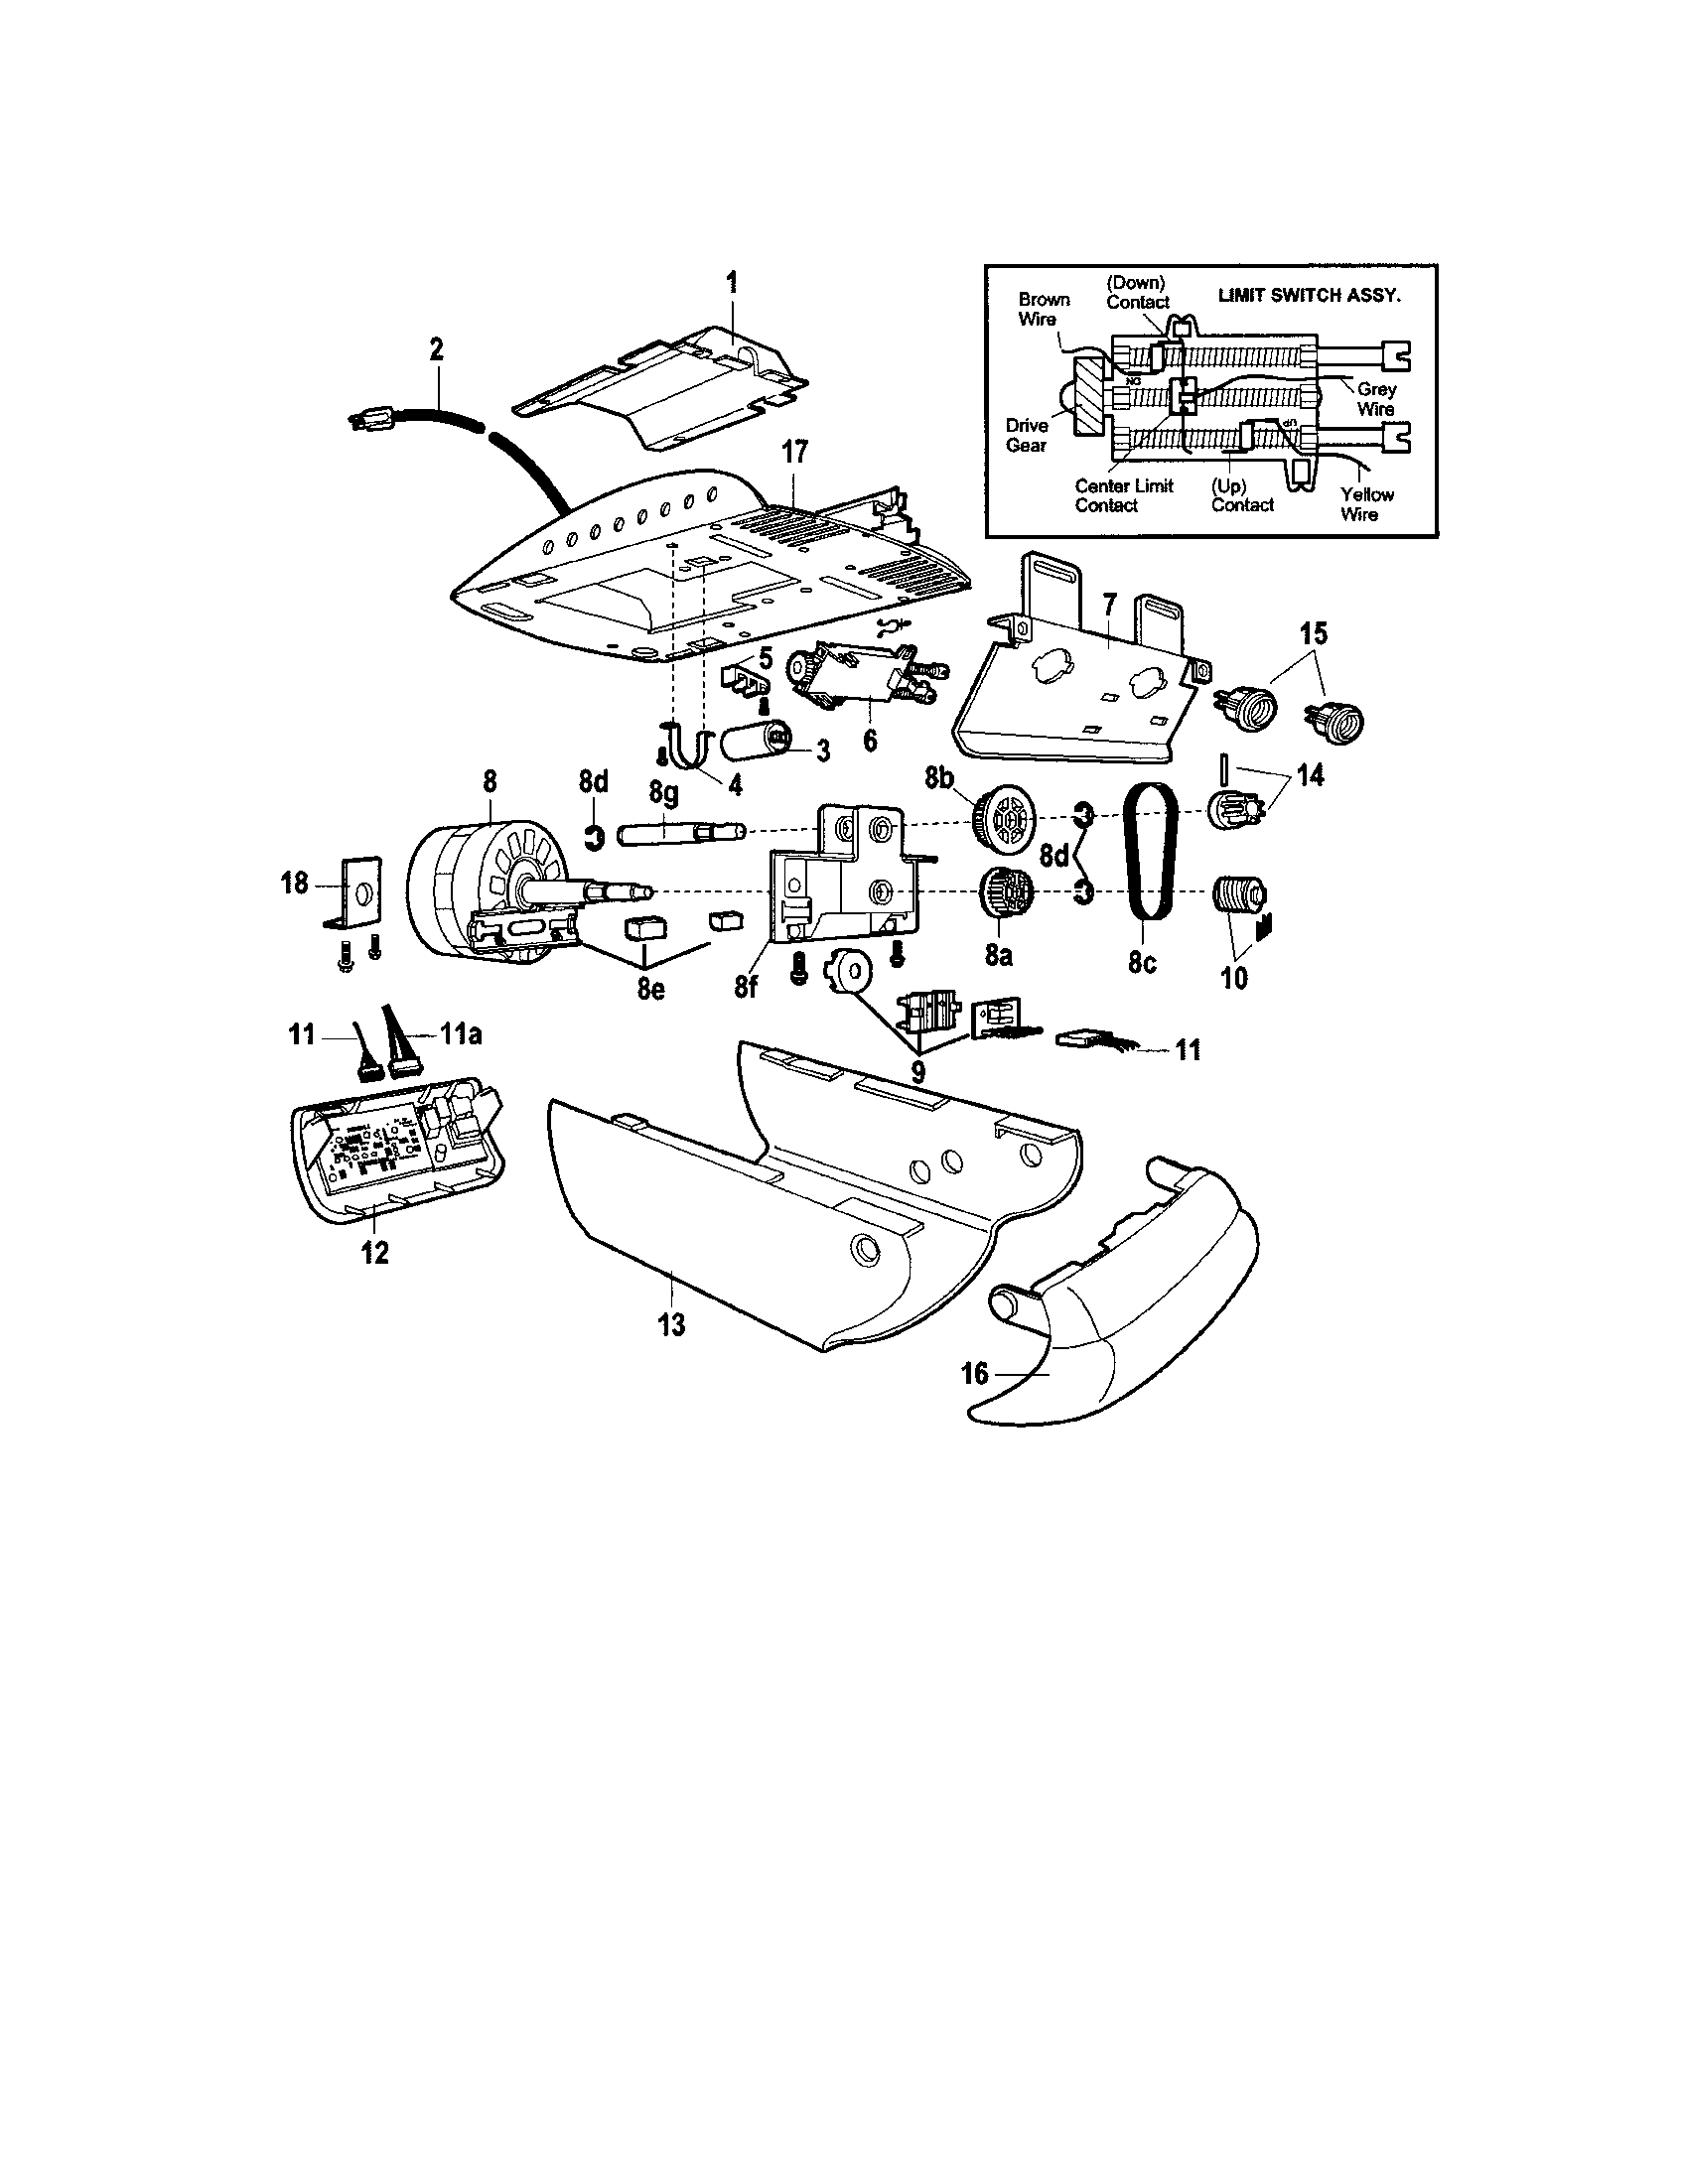 hight resolution of craftsman model 13953992 garage door opener genuine parts stove wiring diagram garage opener wiring diagram